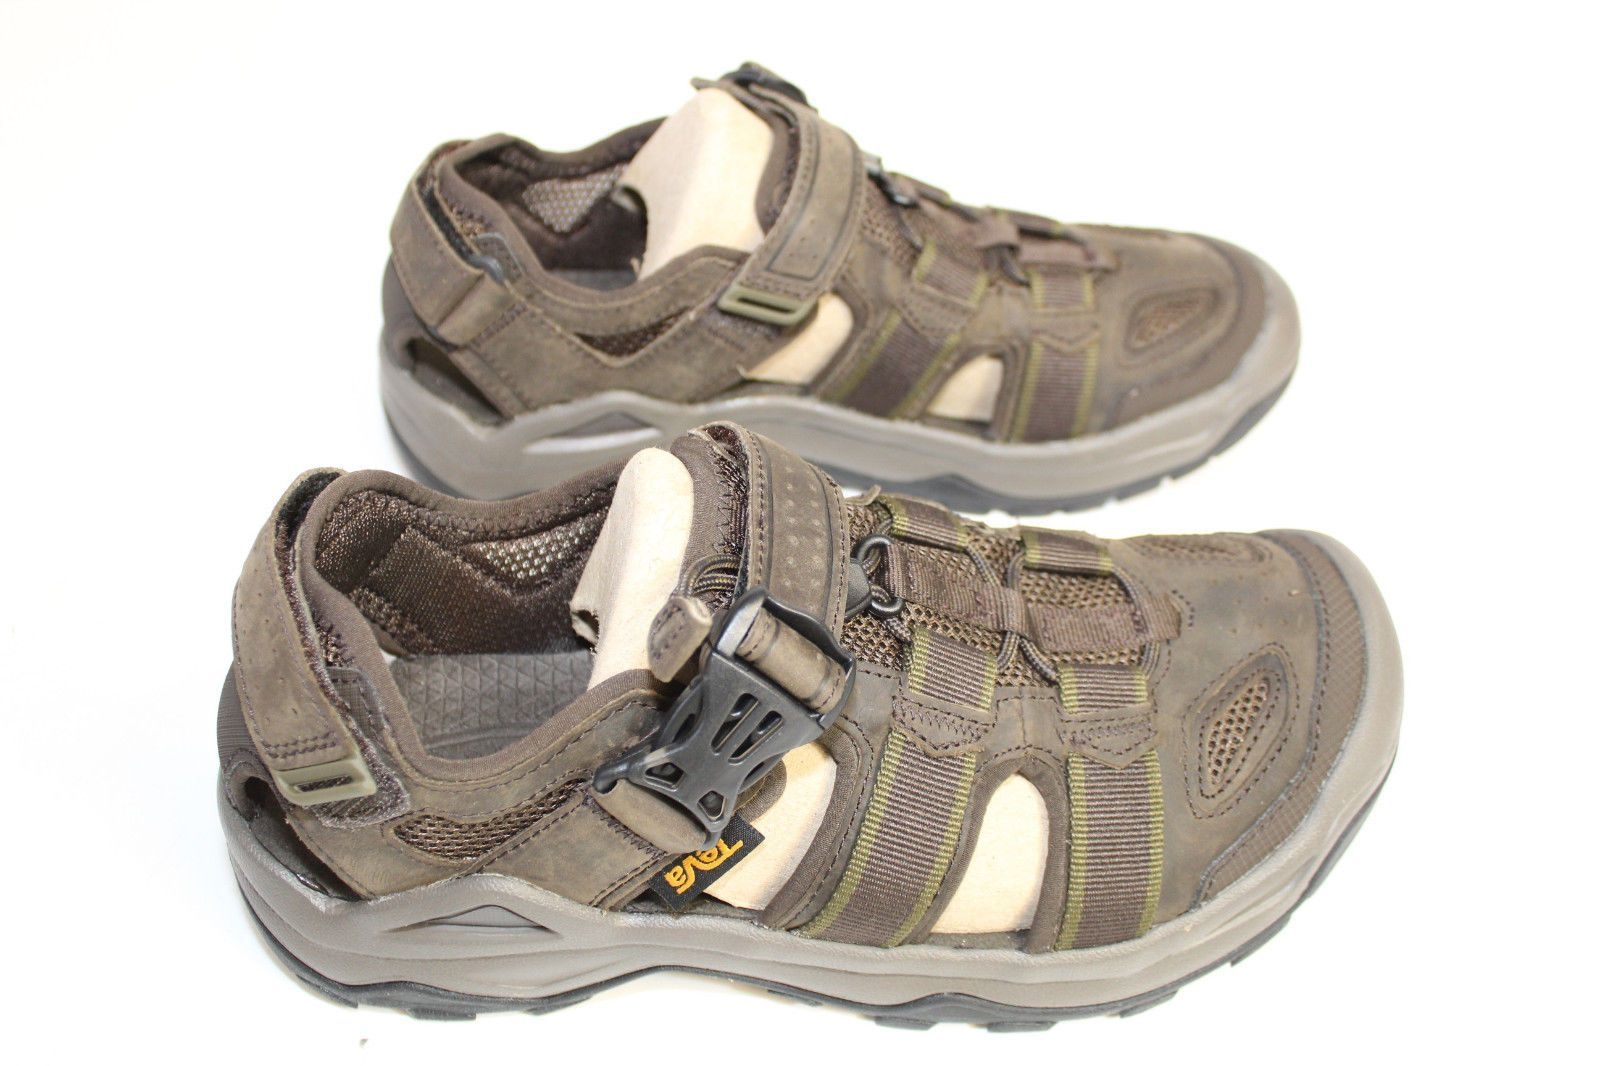 5ae1f1a56 Teva Omnium 2 Leather Turkish Coffee Mens Sport Hiking Sandals NEW Shoes  1019179  47.0 End Date  2018-12-20 20 32 37  hikingsandals